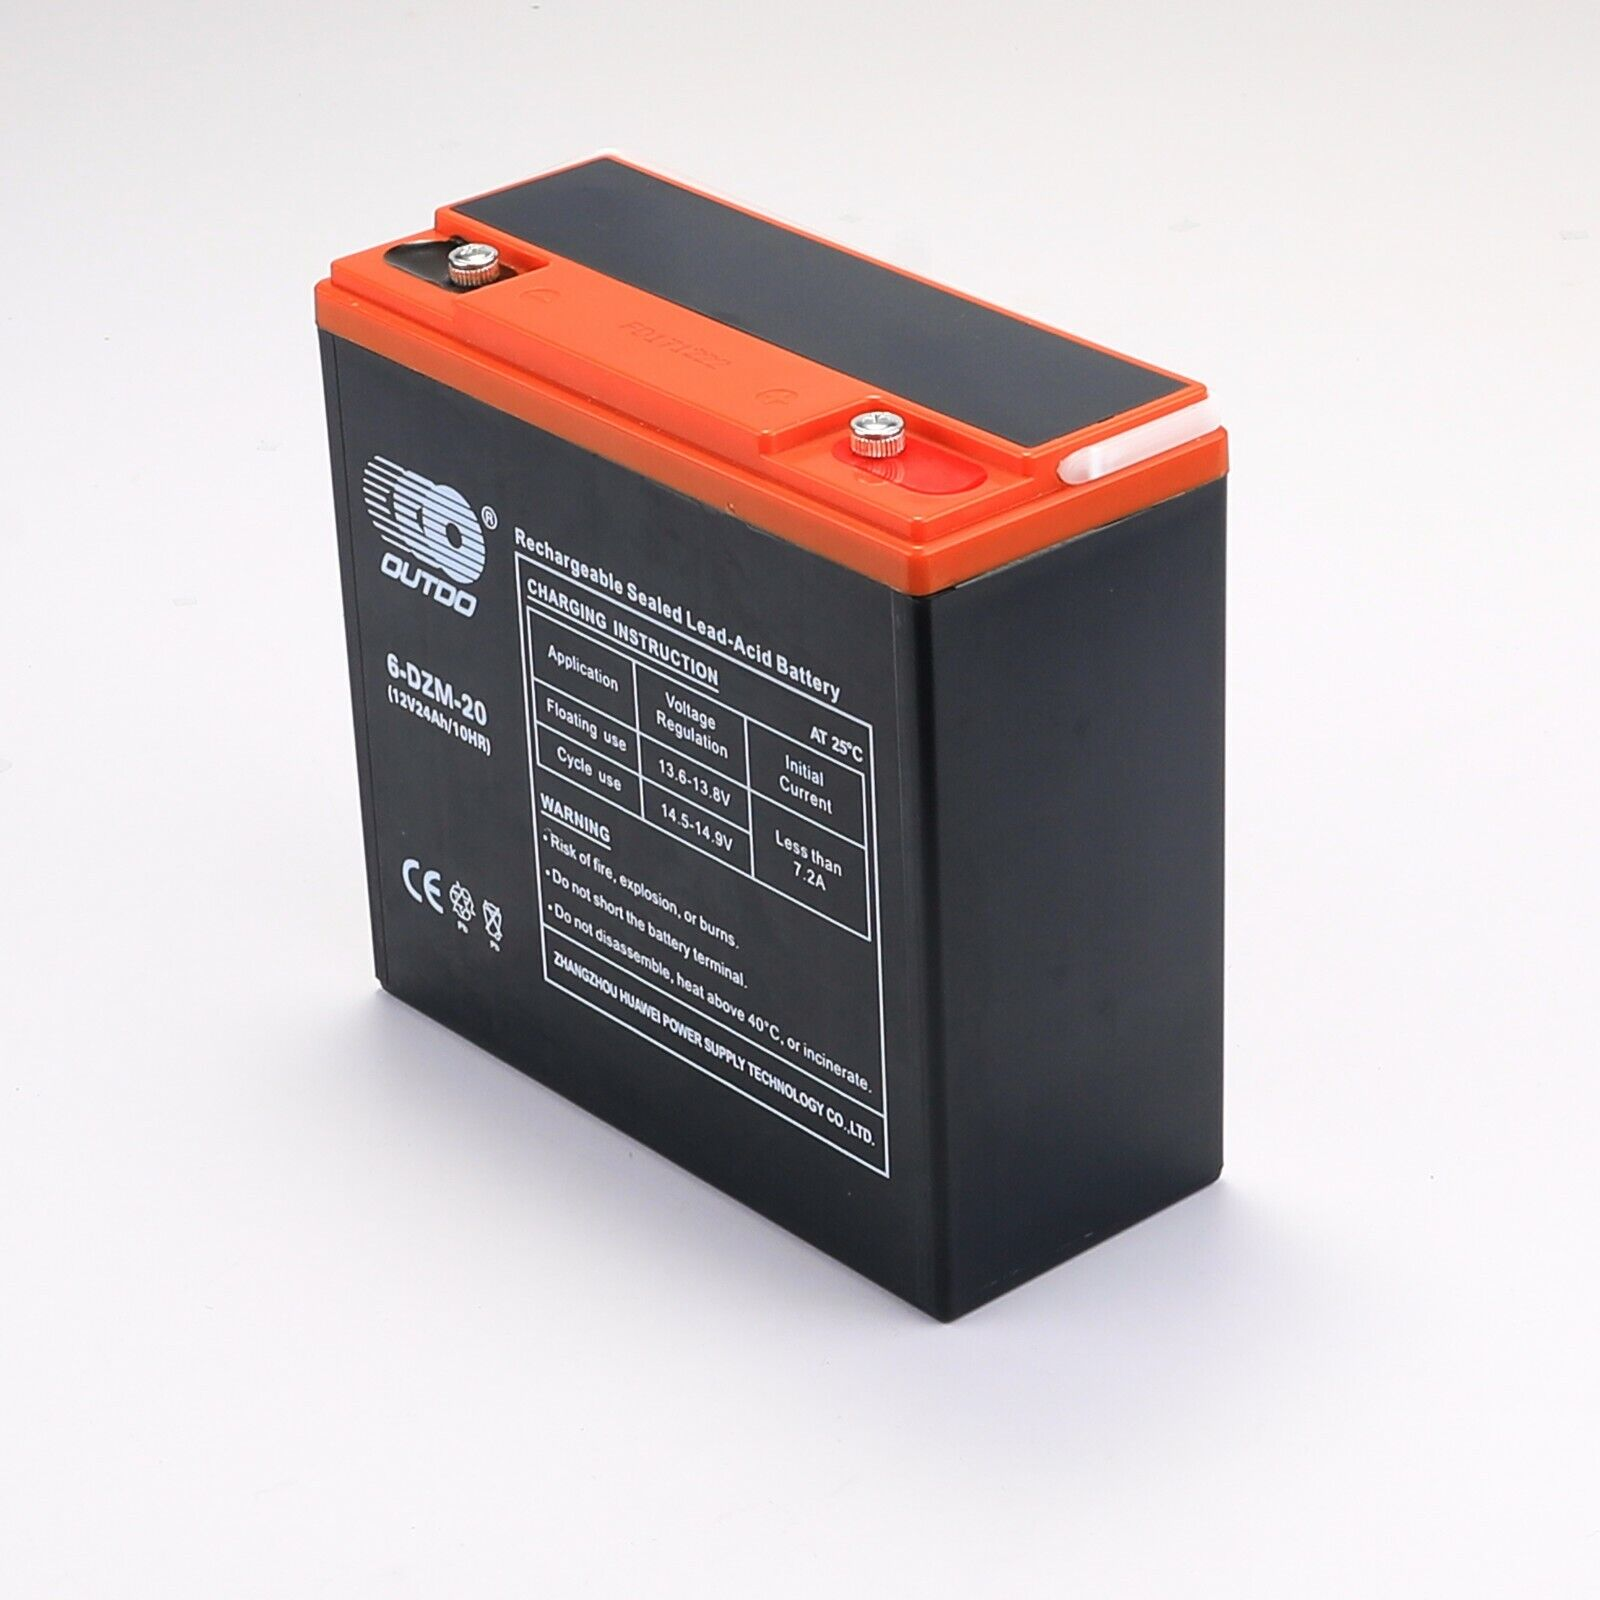 6DZM20 12V 20Ah Rechargeable Scooter Battery Replaces 6-dzm-20 lcx1220p MK20-12